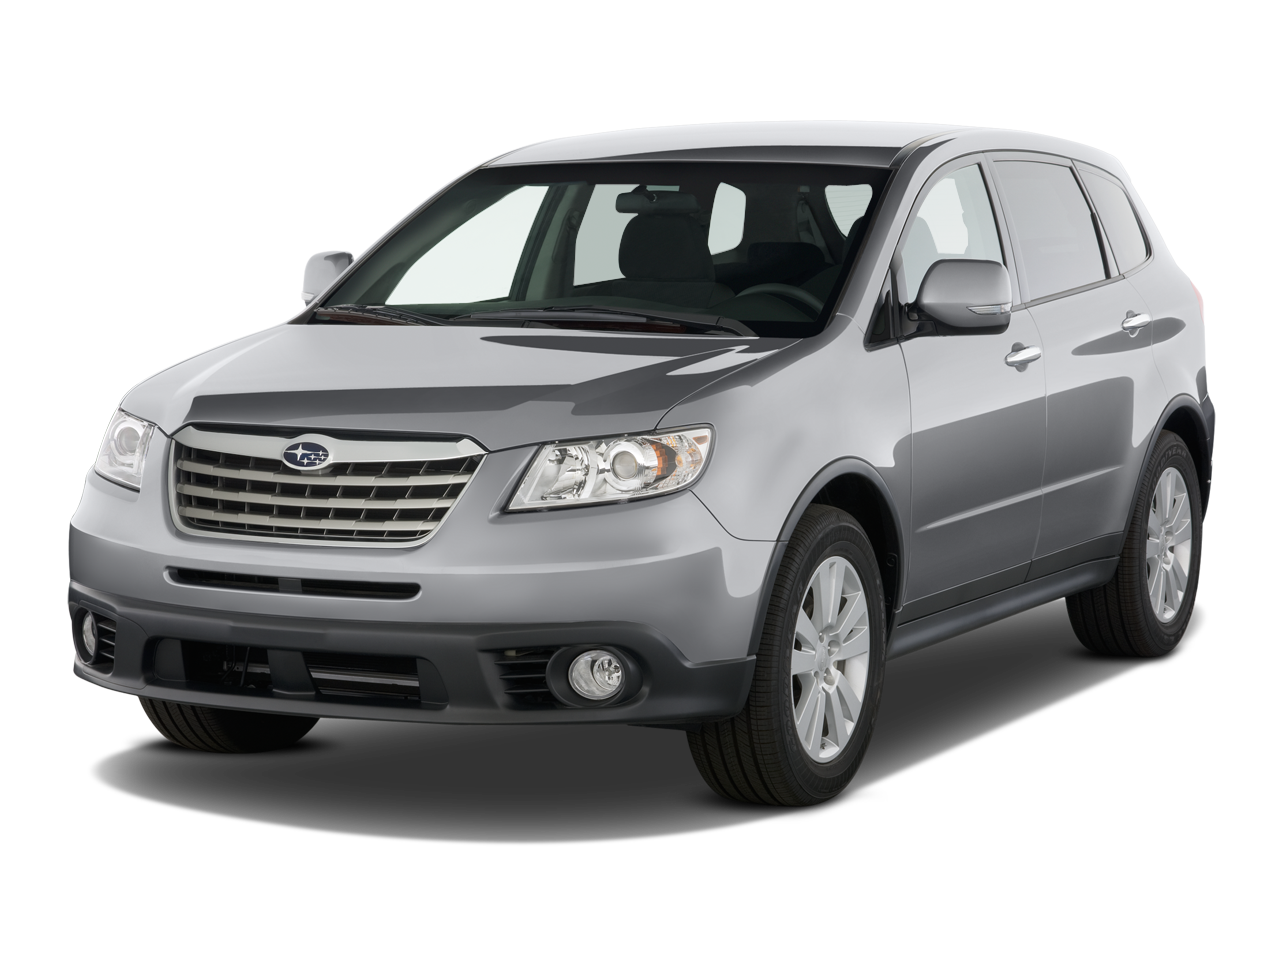 2009 subaru tribeca limited subaru crossover suv review. Black Bedroom Furniture Sets. Home Design Ideas